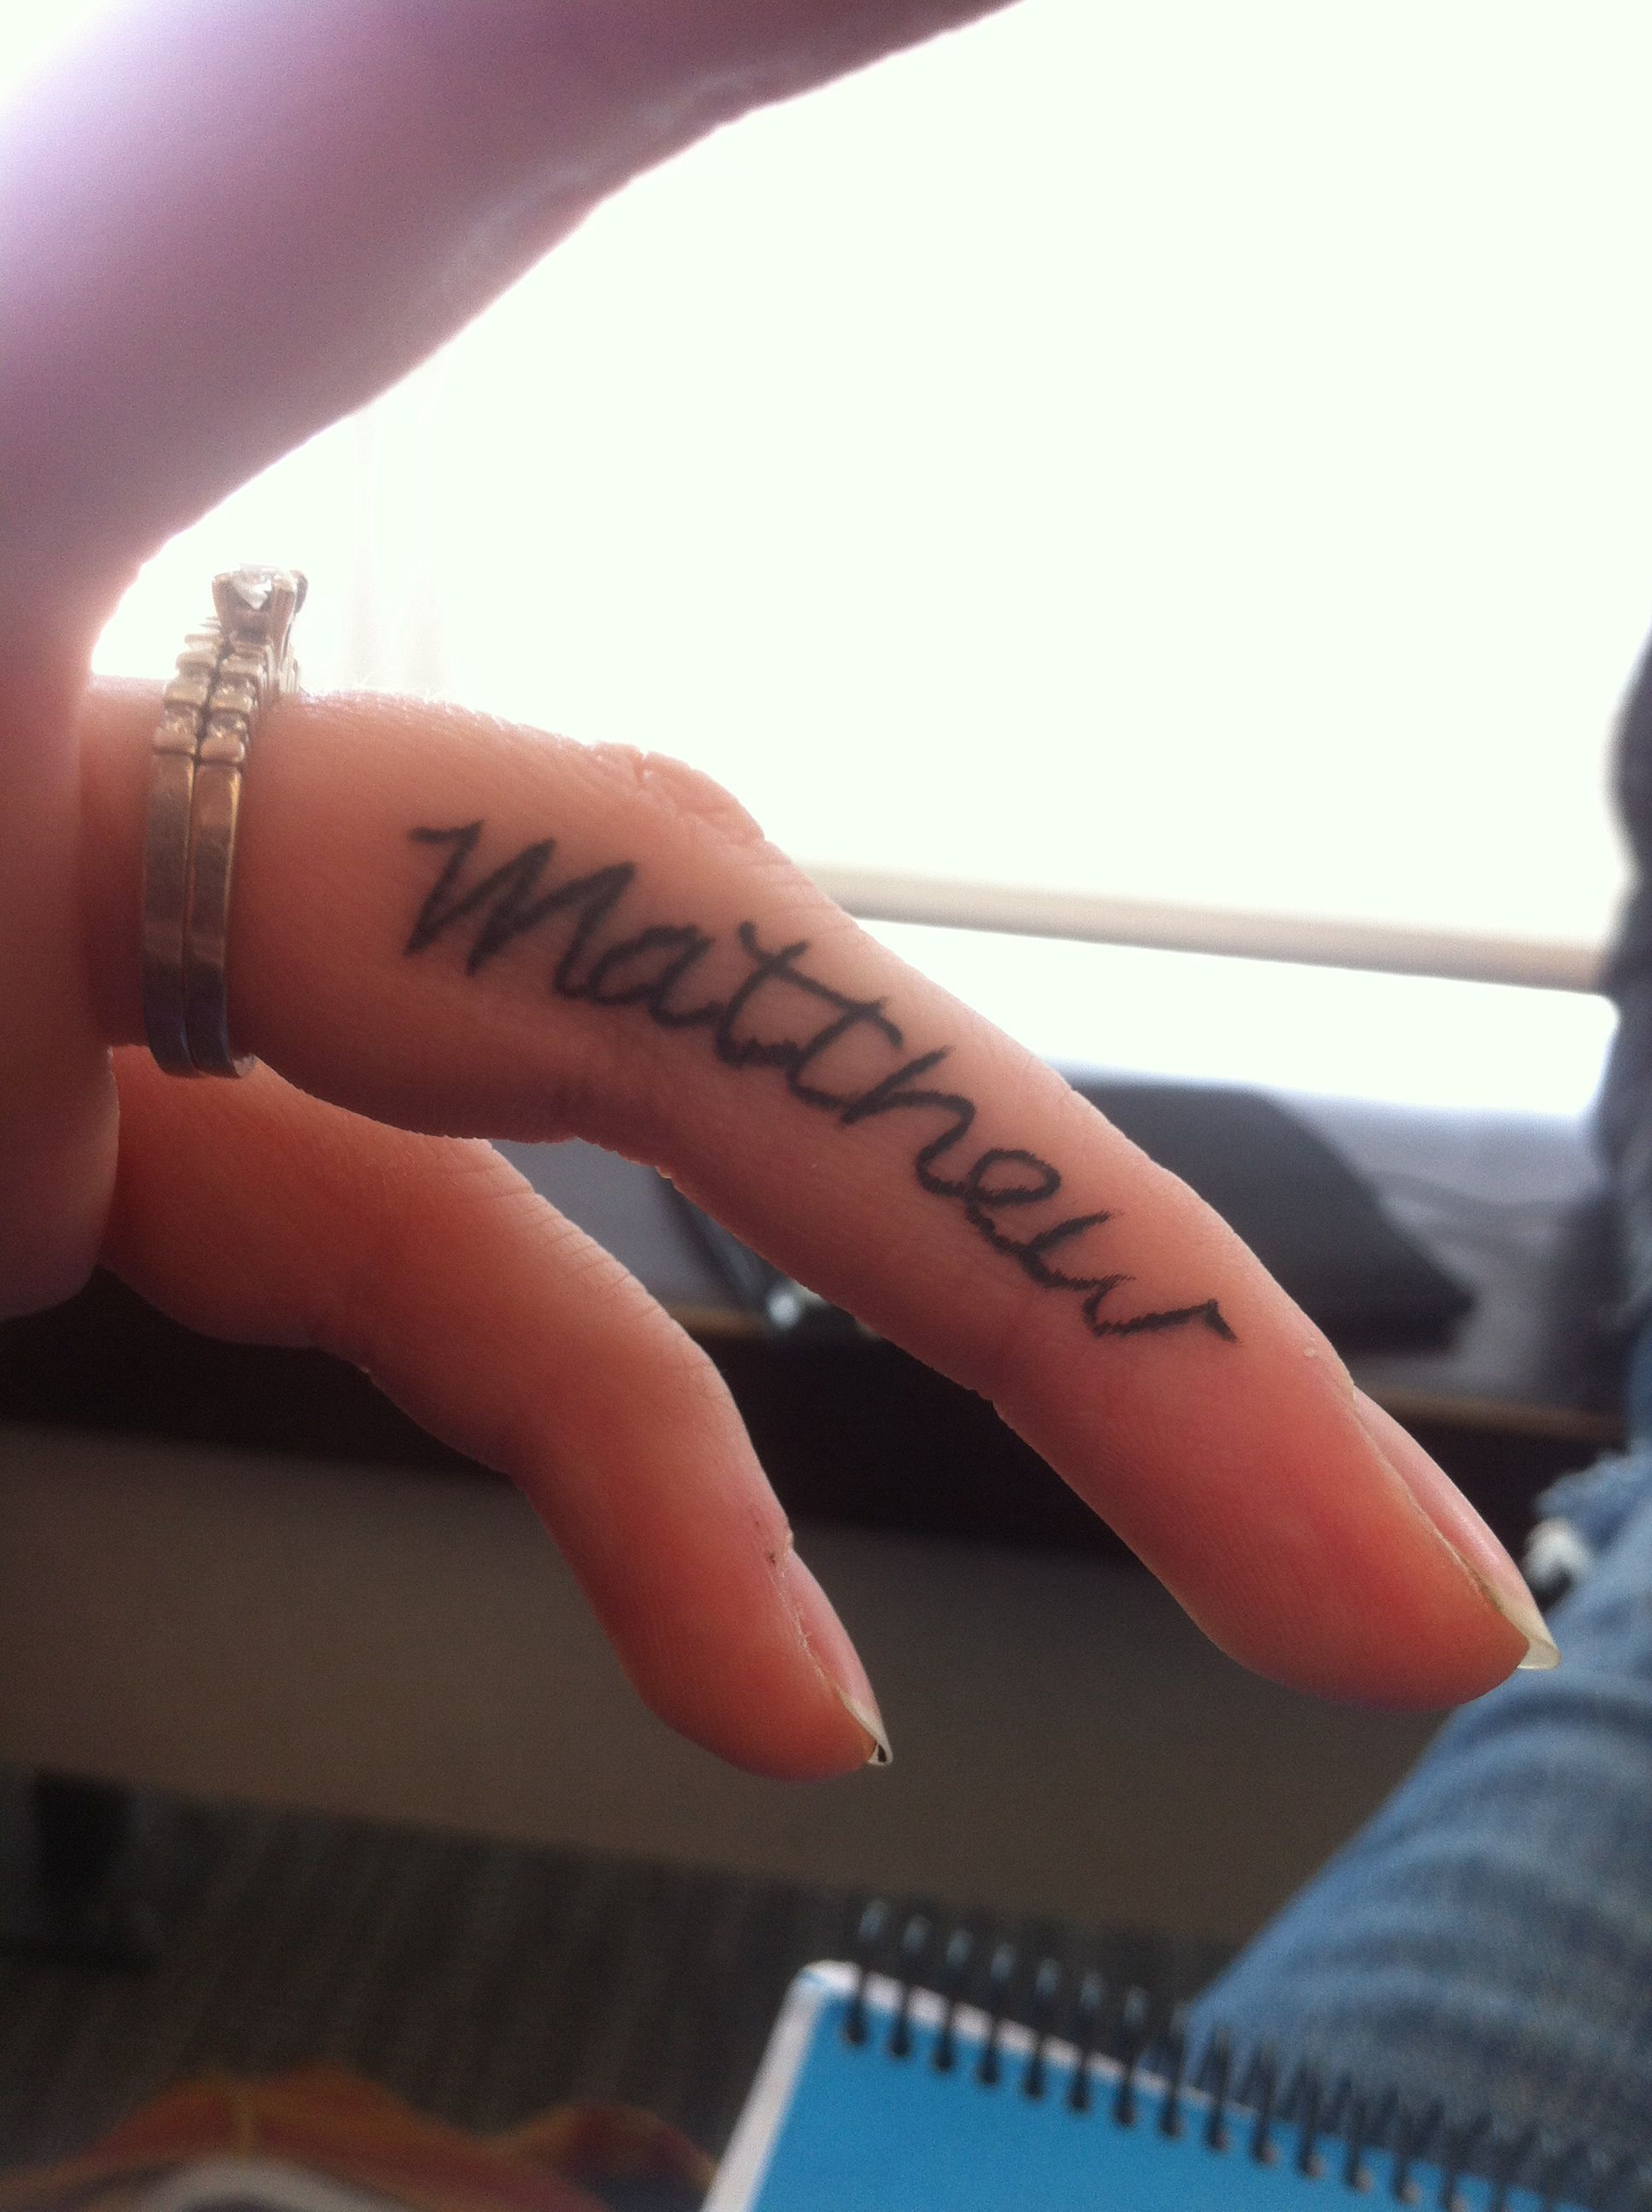 Wedding/couples finger tattoo #tattoo #couplestattoo #fingertattoo #name #husband